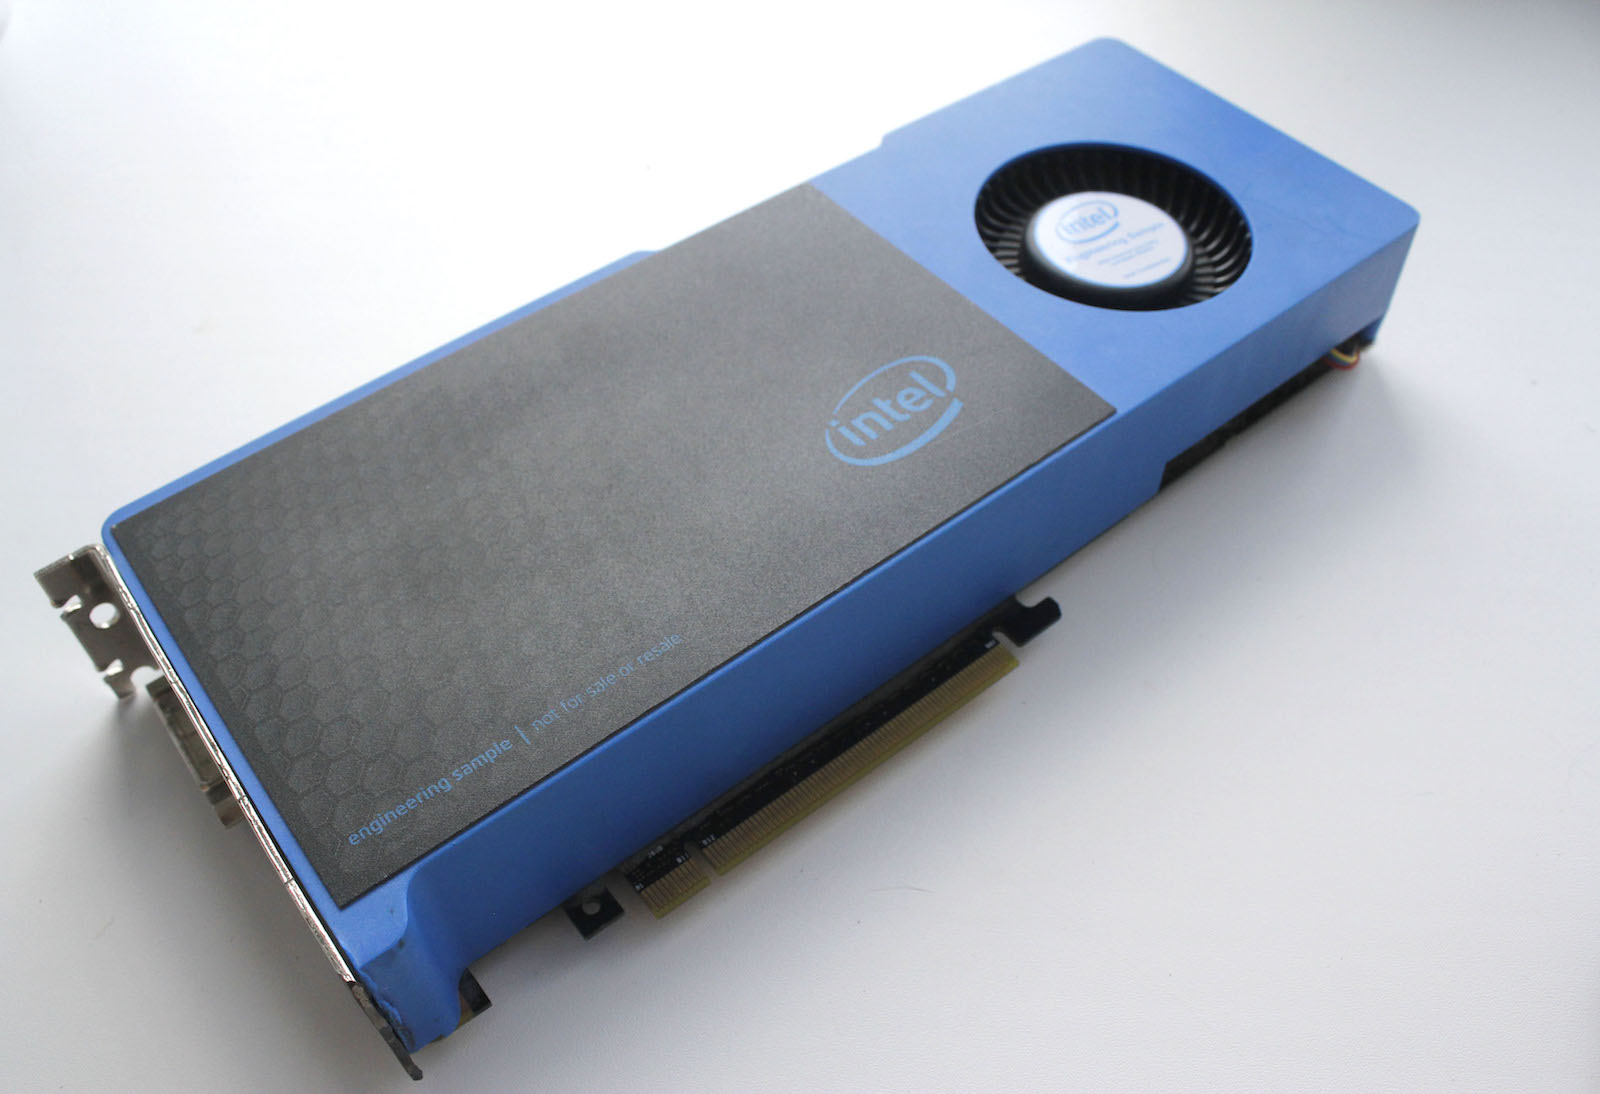 Check Out Intel's Graphics Card Prototype